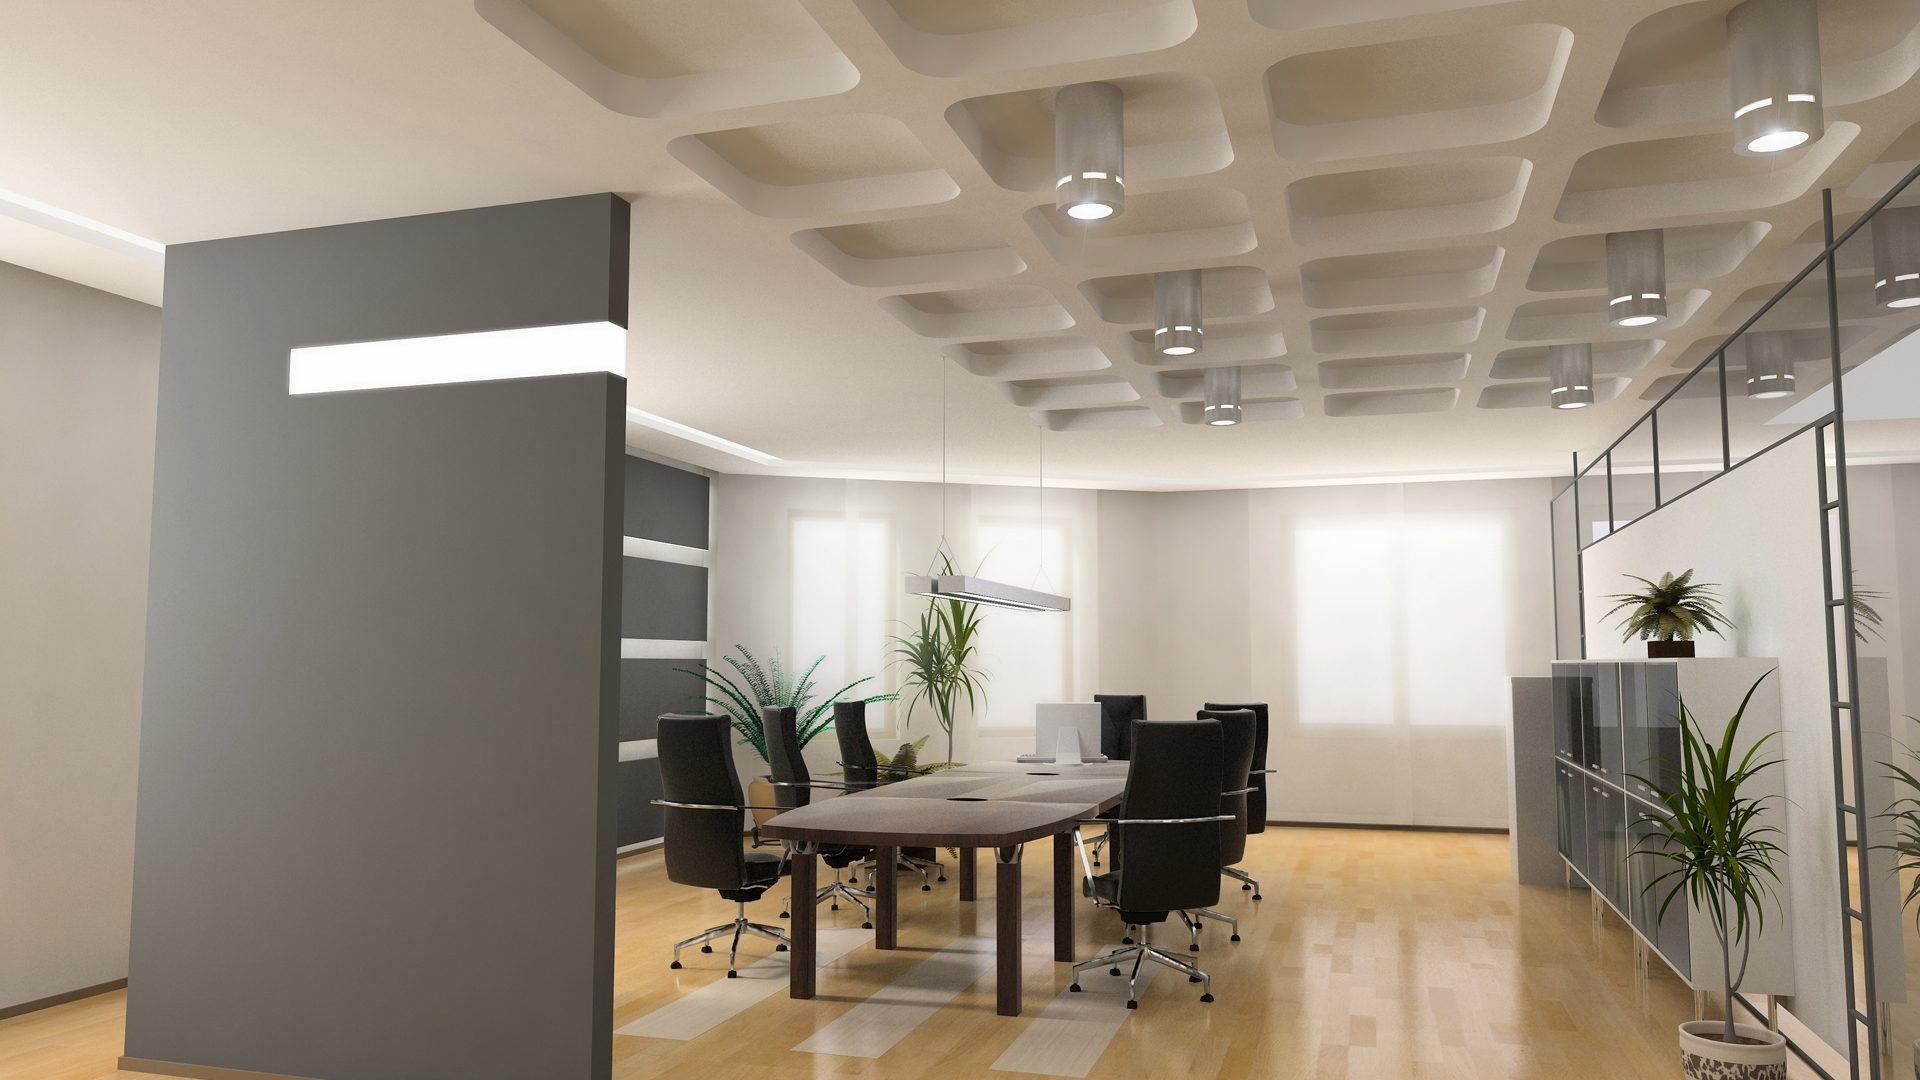 office_walls_desks_chairs_modern_39300_1920x1200